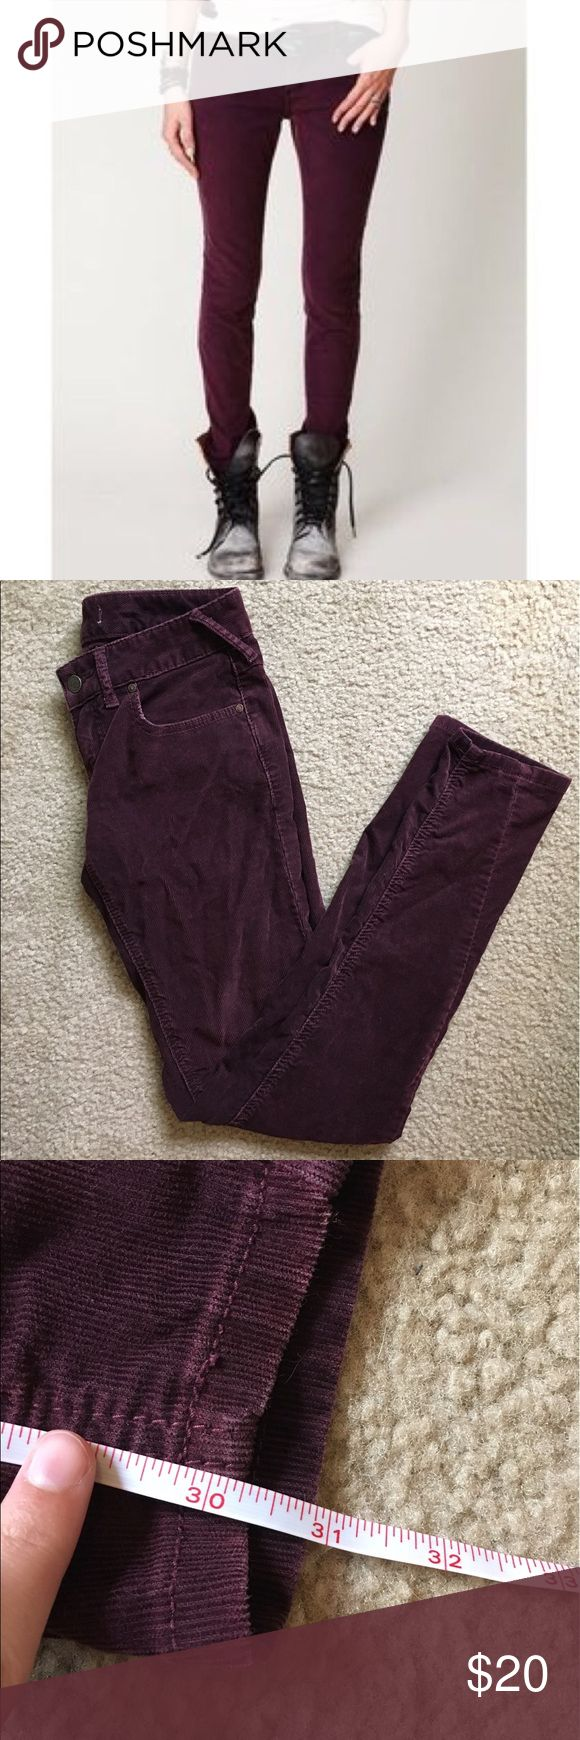 Free People Purple Skinny Pants No size tag, it was removed a while ago. These fit a size 0 and have some stretch to them. The waist is 14 inches across and the inseam is approximately 30 inches long. Cotton blend material. Purple/maroon color. Corduroy texture. By Free People. No flaws other than the missing tag.  I ship daily - excluding Sundays and holidays - and I store items in a smoke free, pet free environment. Open to offers; bundles discounted! Free People Pants Skinny